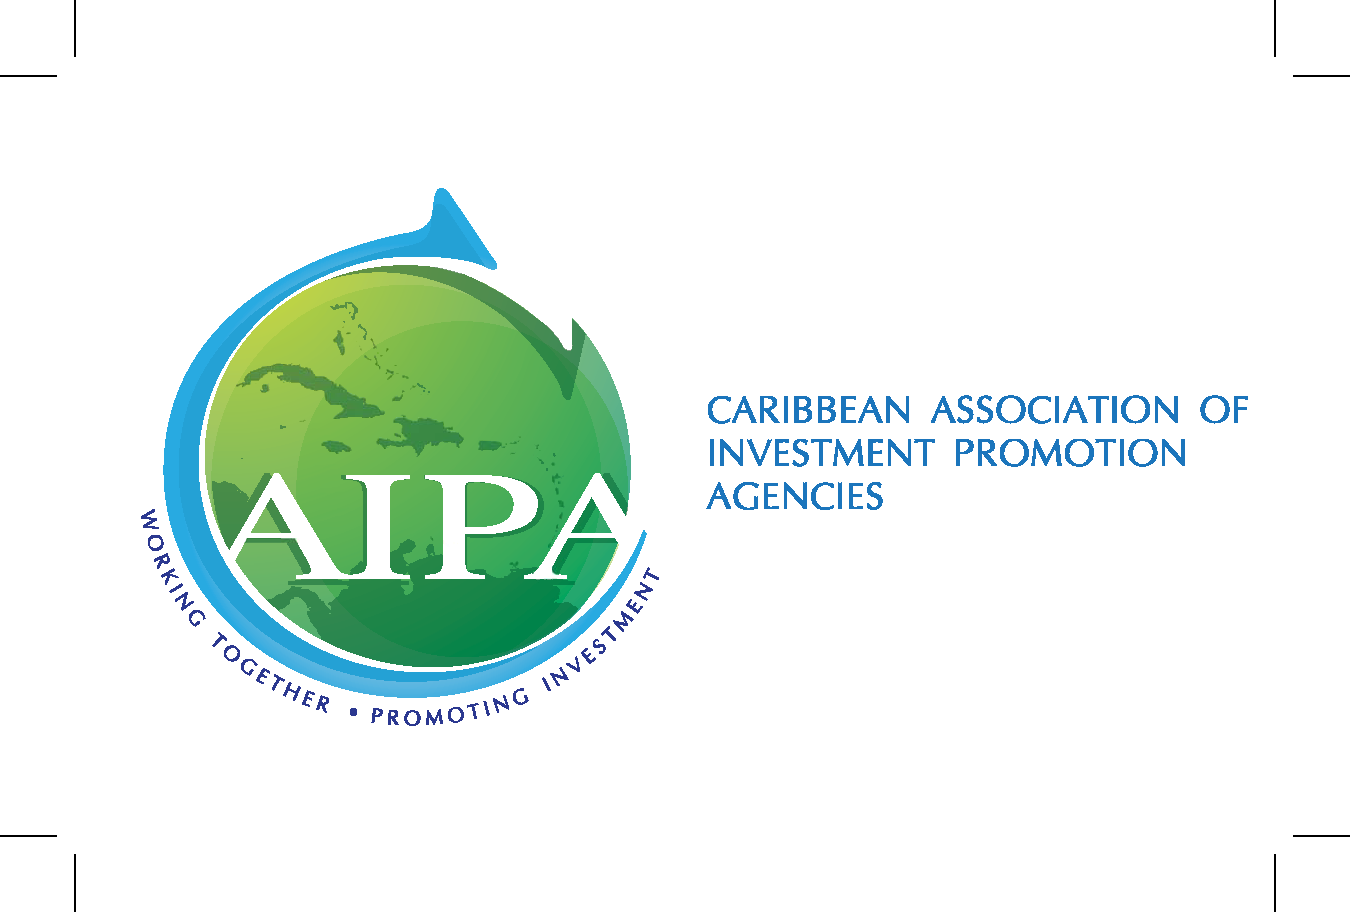 Carribean Association of Investment Promotion Agencies (CAIPA)